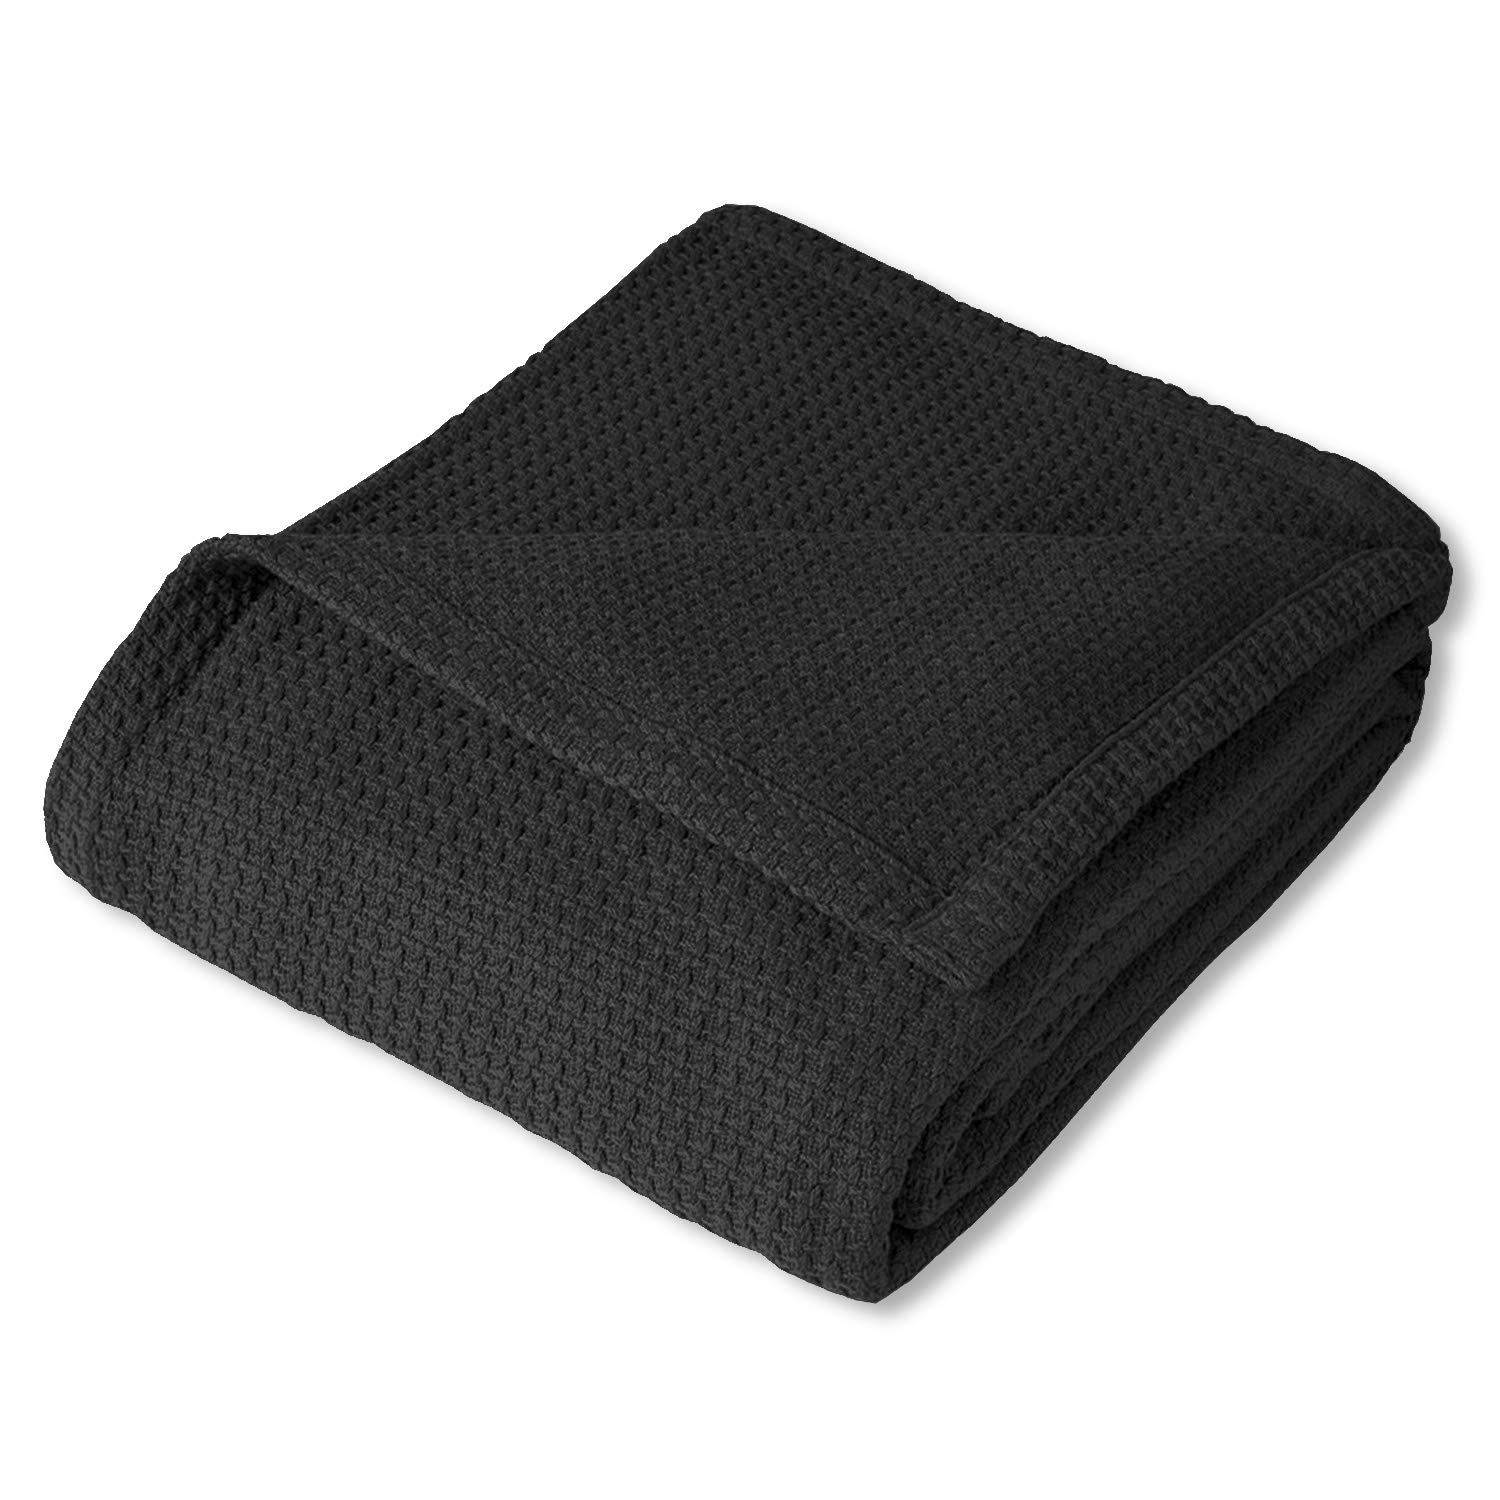 Sweet Home Collection 100% Fine Cotton Blanket Luxurious Basket Weave Stylish Design Soft and Comfortable All Season Warmth, Full/Queen, Black